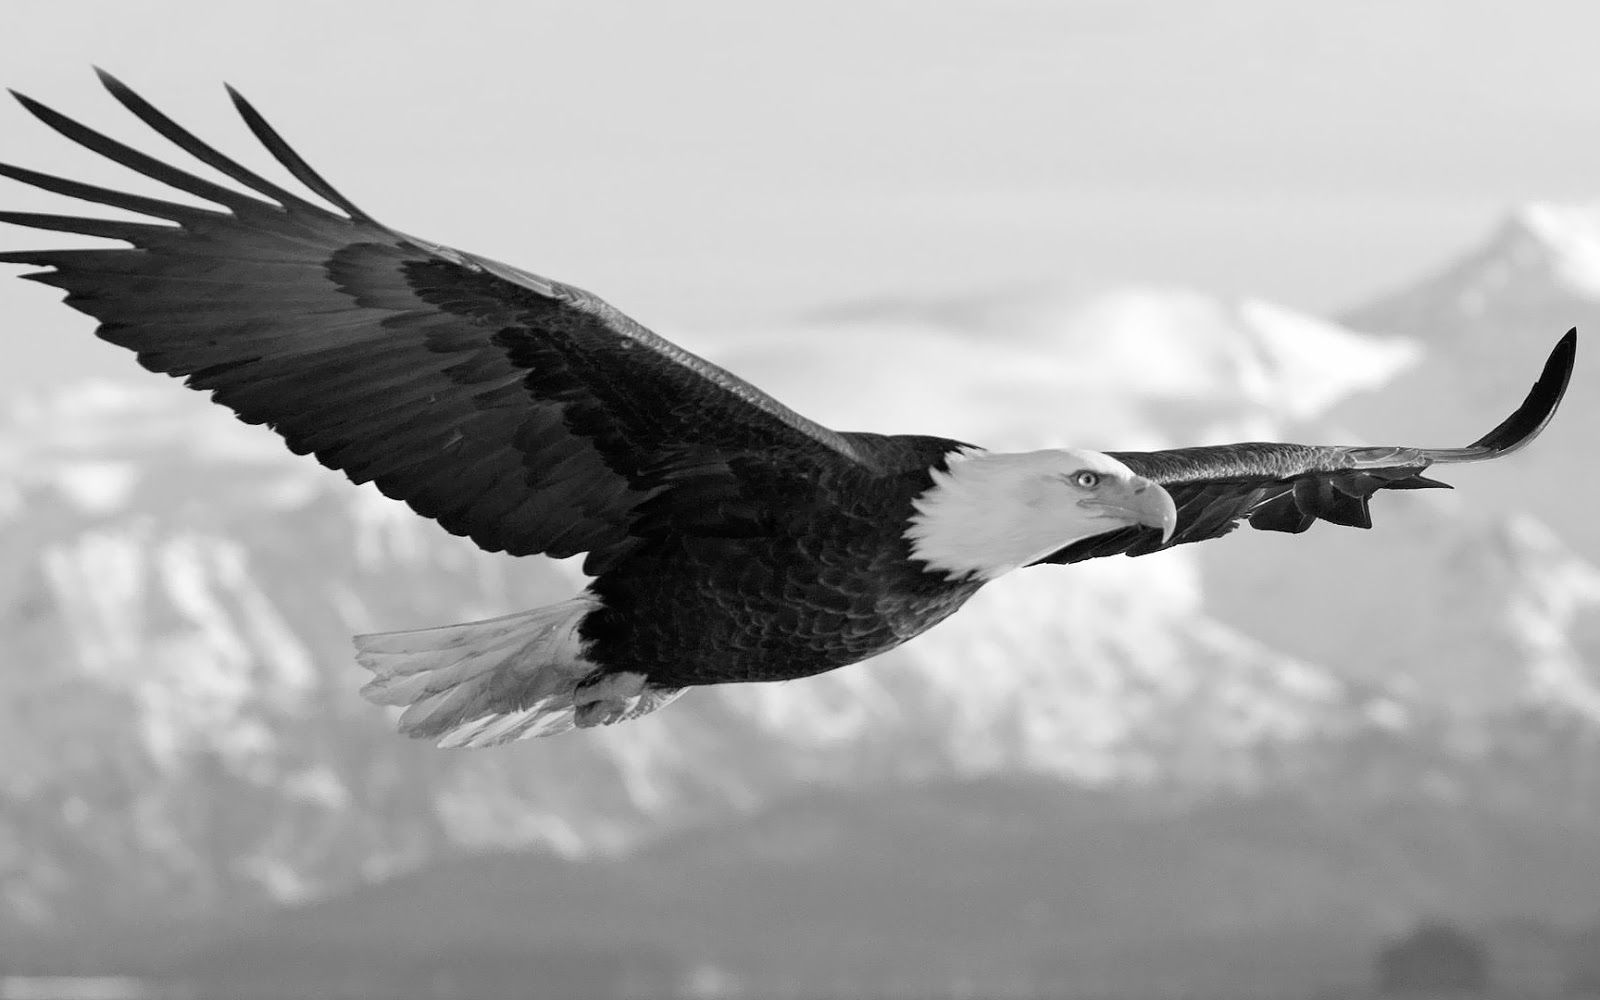 Bald eagles are capable of seeing fish in the water from several hundred feet above while soaring gliding or in flapping flight